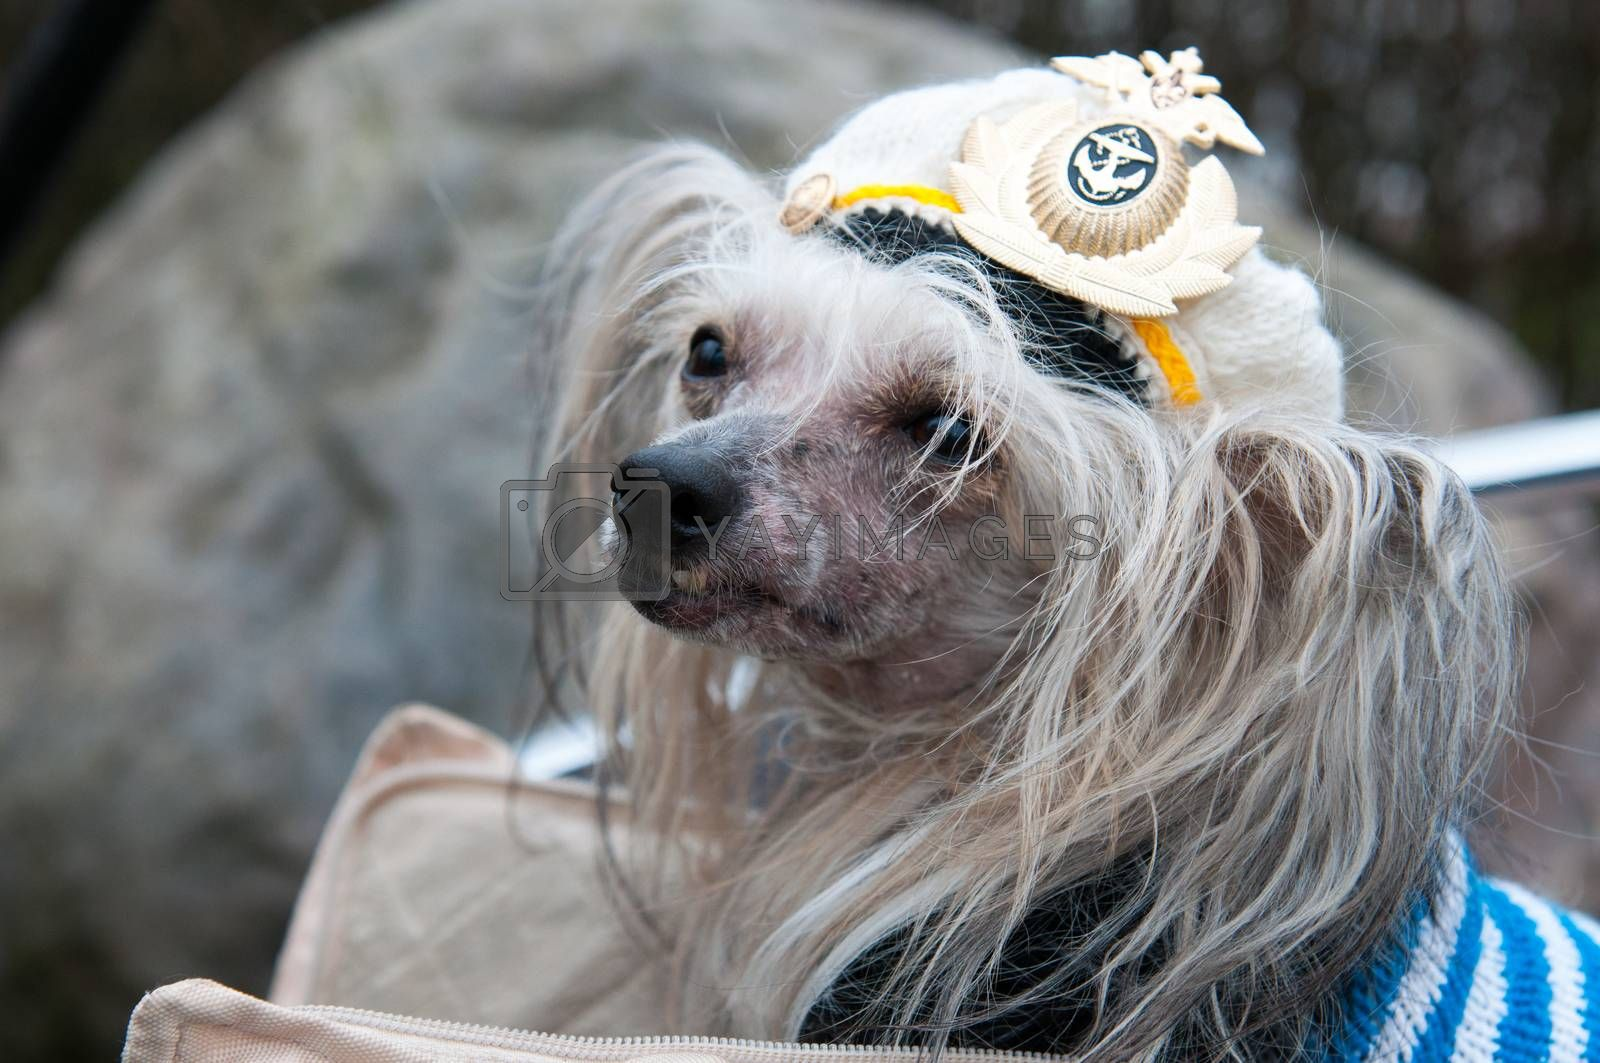 Groomed Chinese Crested Dog  - Powderpuff, three years month old.